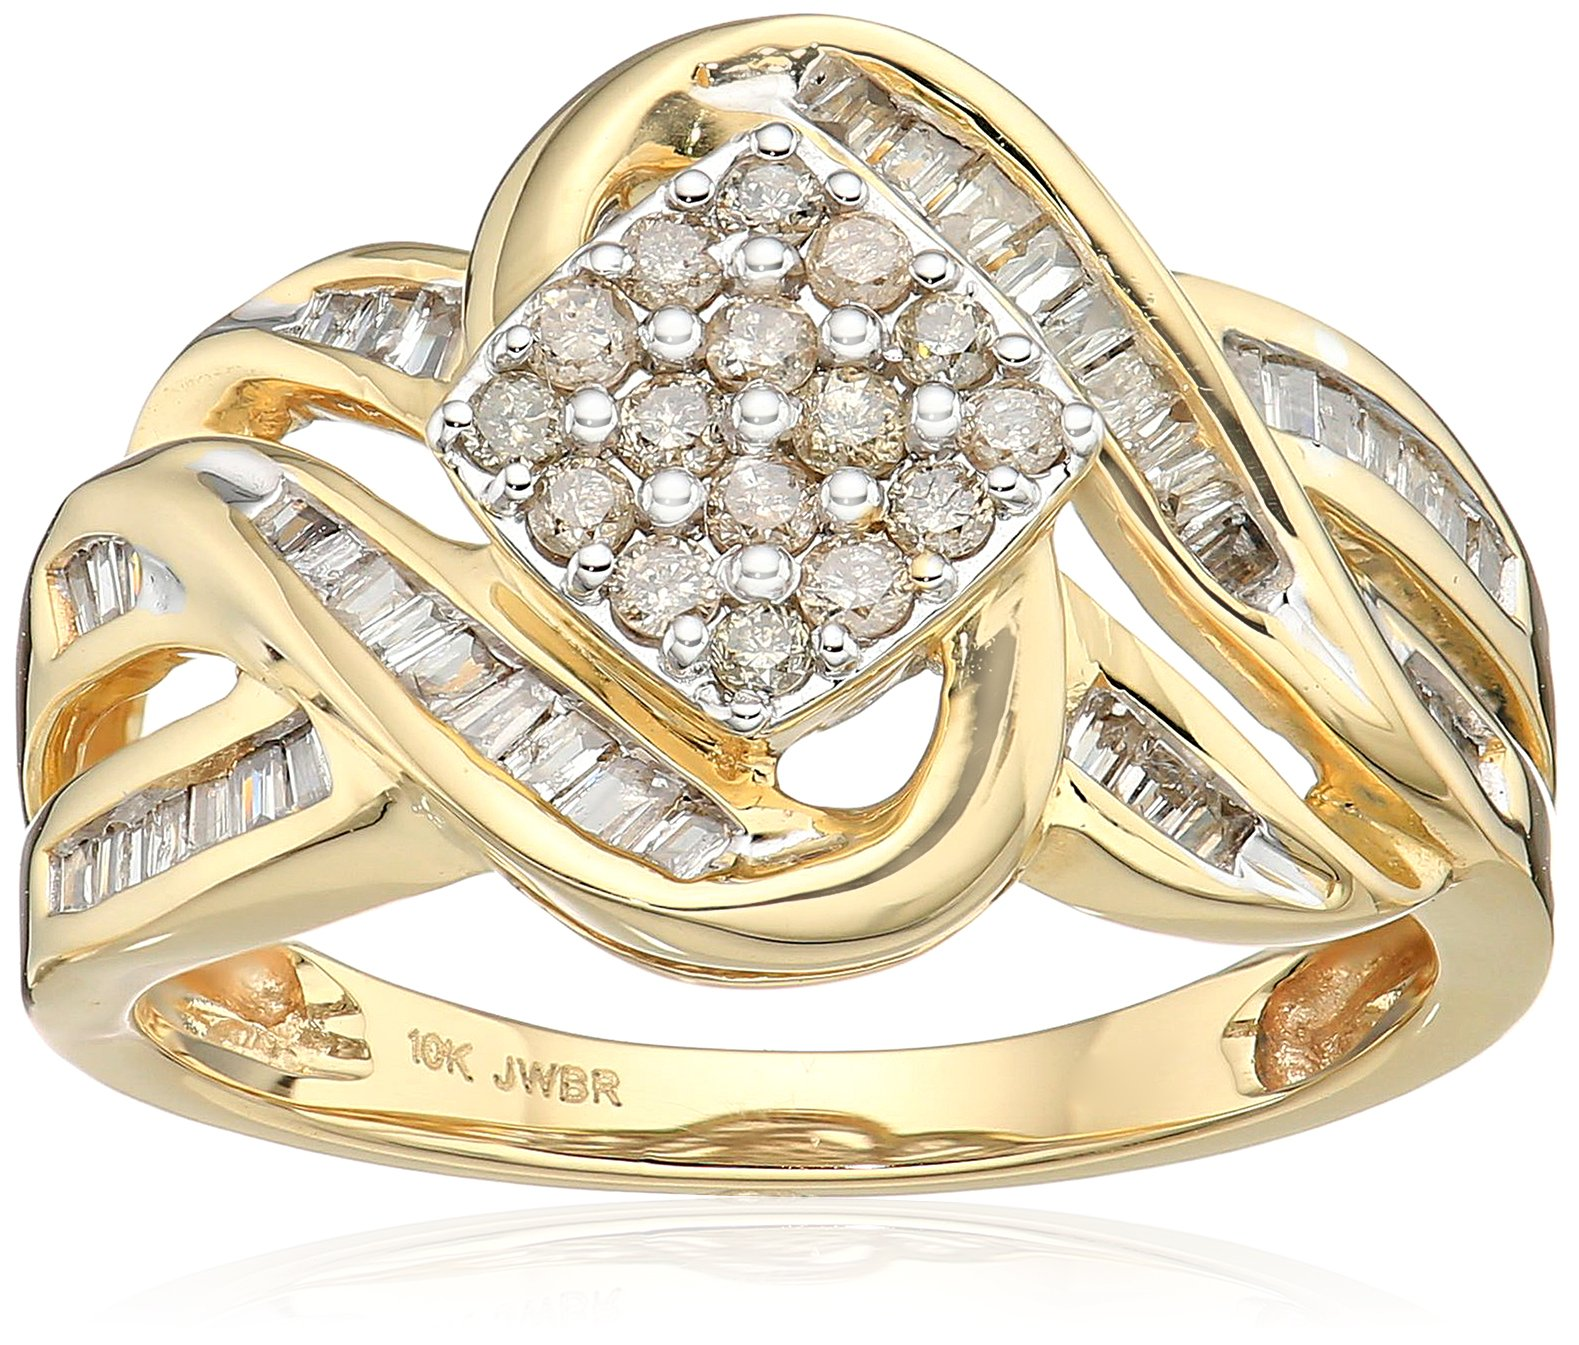 10k Yellow Gold Diamond Square cluster Ring (1/2 cttw), Size 7